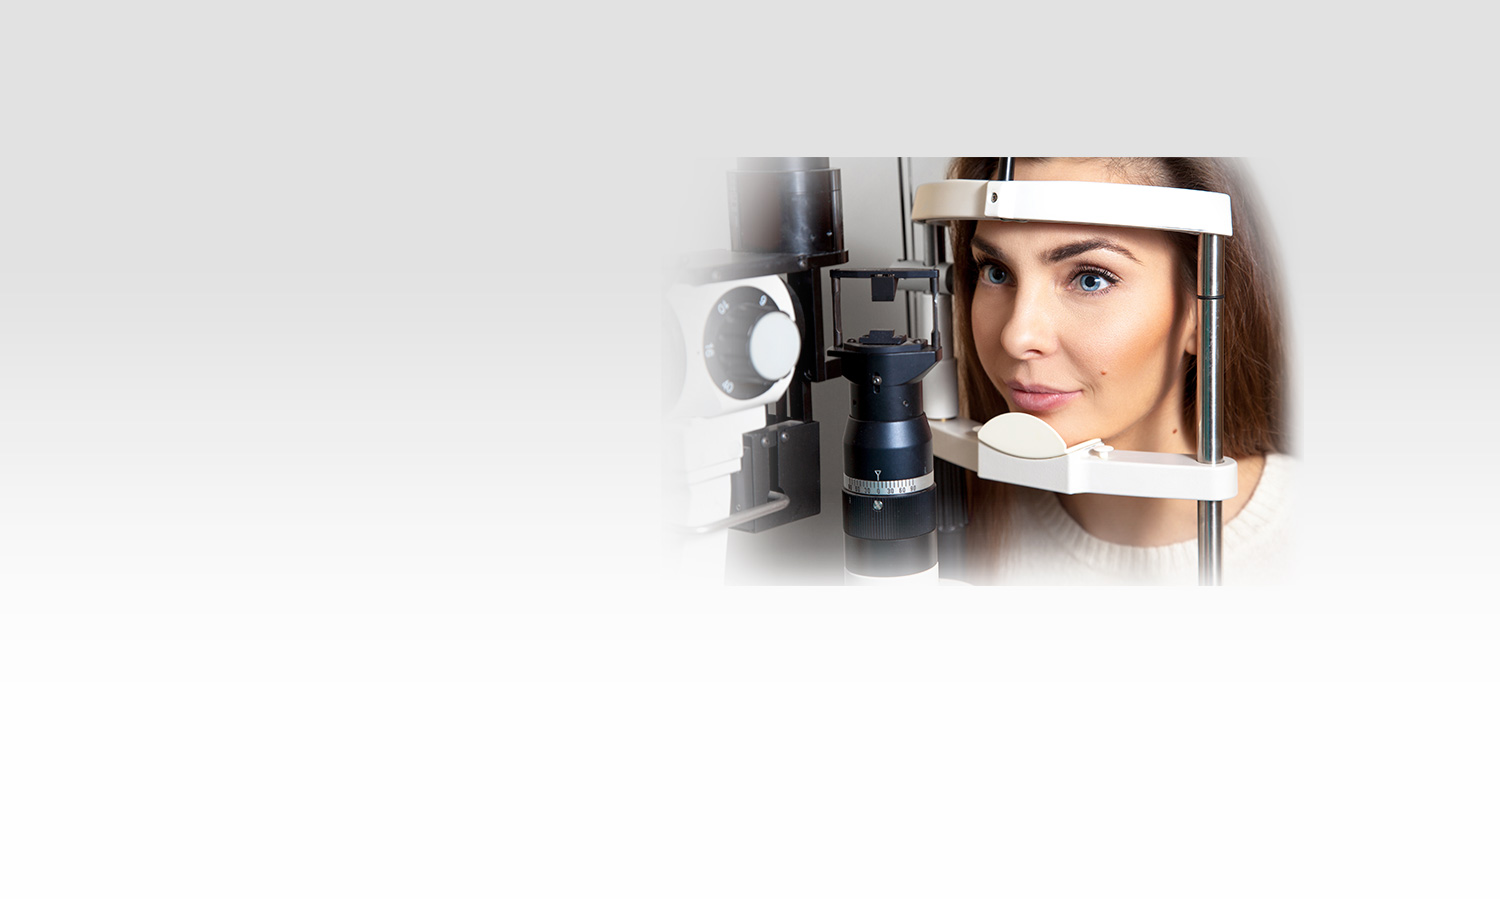 Ophtalmologic Centre ArtLife  Laser vision correction  - Eye examinations - Blepharoplasty - Minor eye treatments